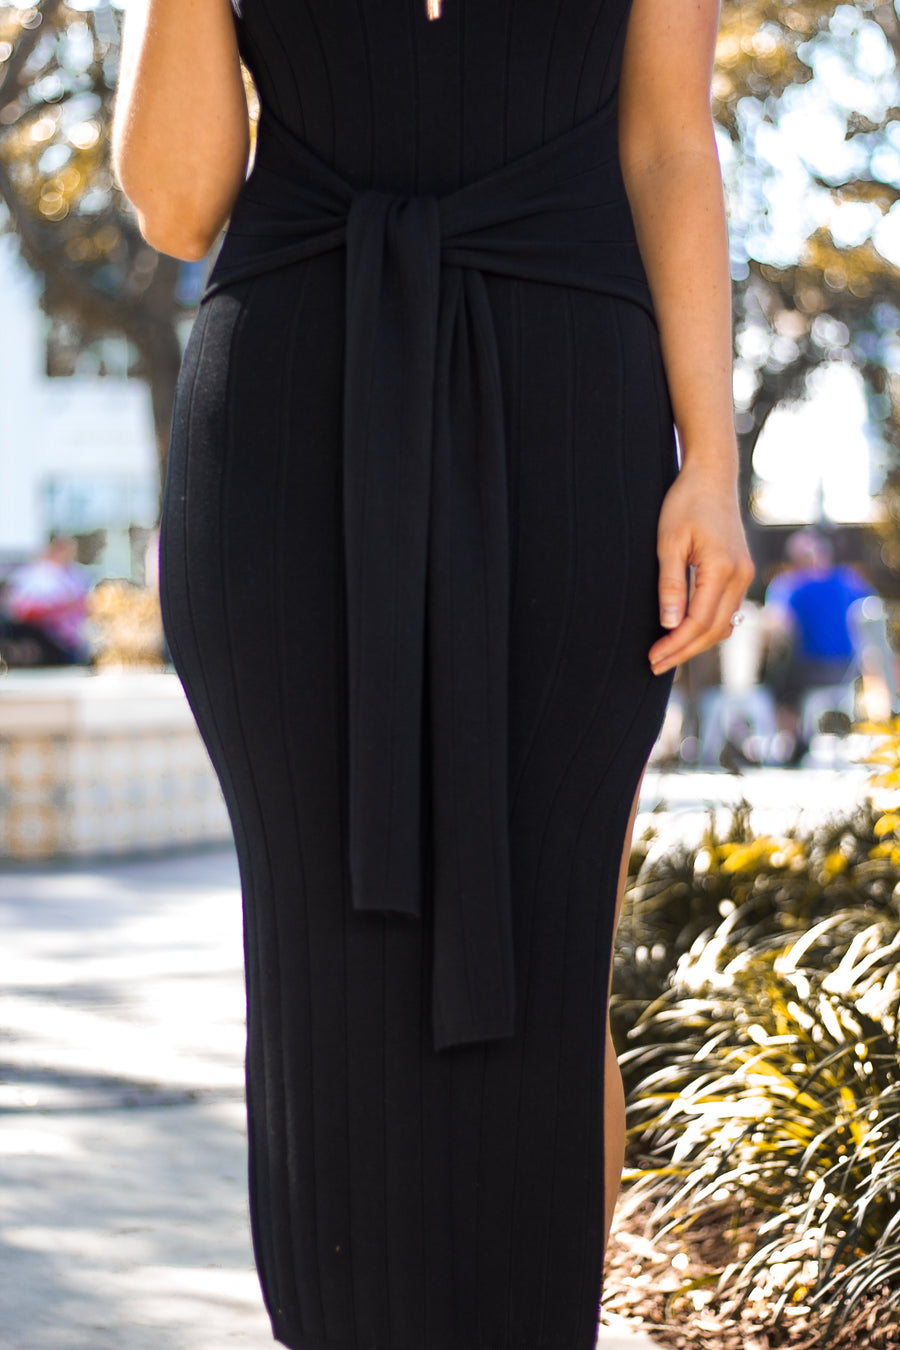 Thick straps attach to a u-neckline and lead to a knit fitted bodice and skirt silhouette with fabric ties that come out from the sides and could be tied in the front.